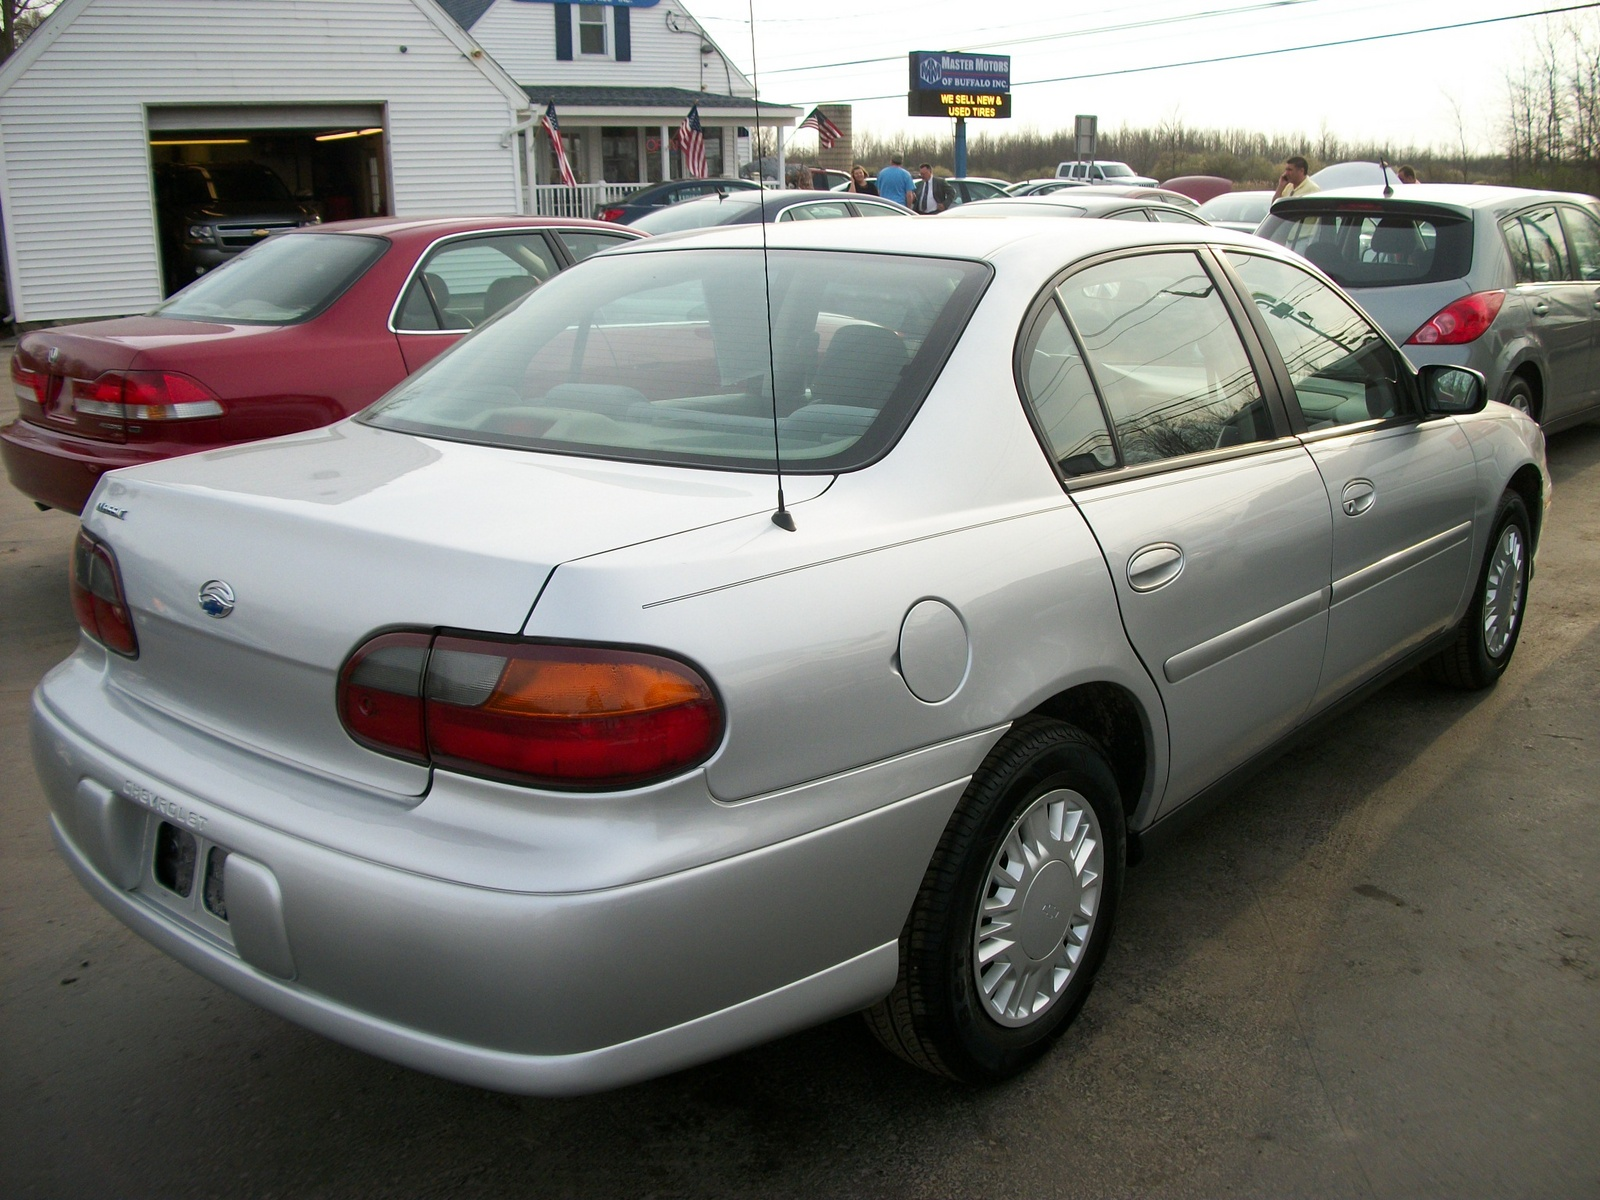 Chevrolet Classic Dr Std Sedan Pic on 2004 Chevy Lumina